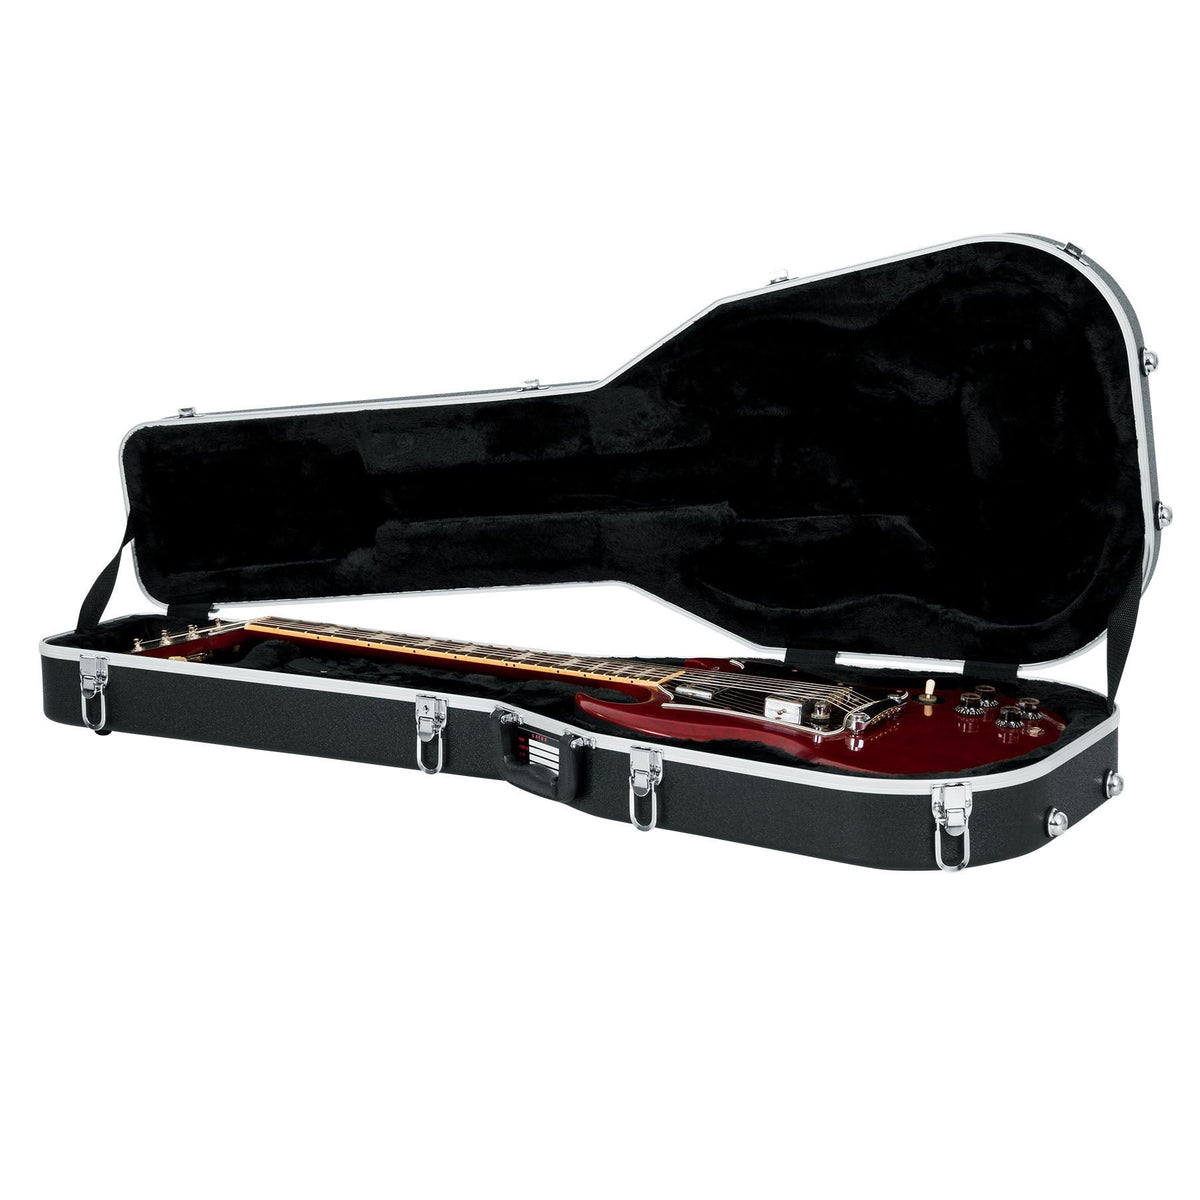 Gator Cases Deluxe Molded Case for Epiphone 1966 G-400, G-400 Custom, G-400 SG Electric Guitars